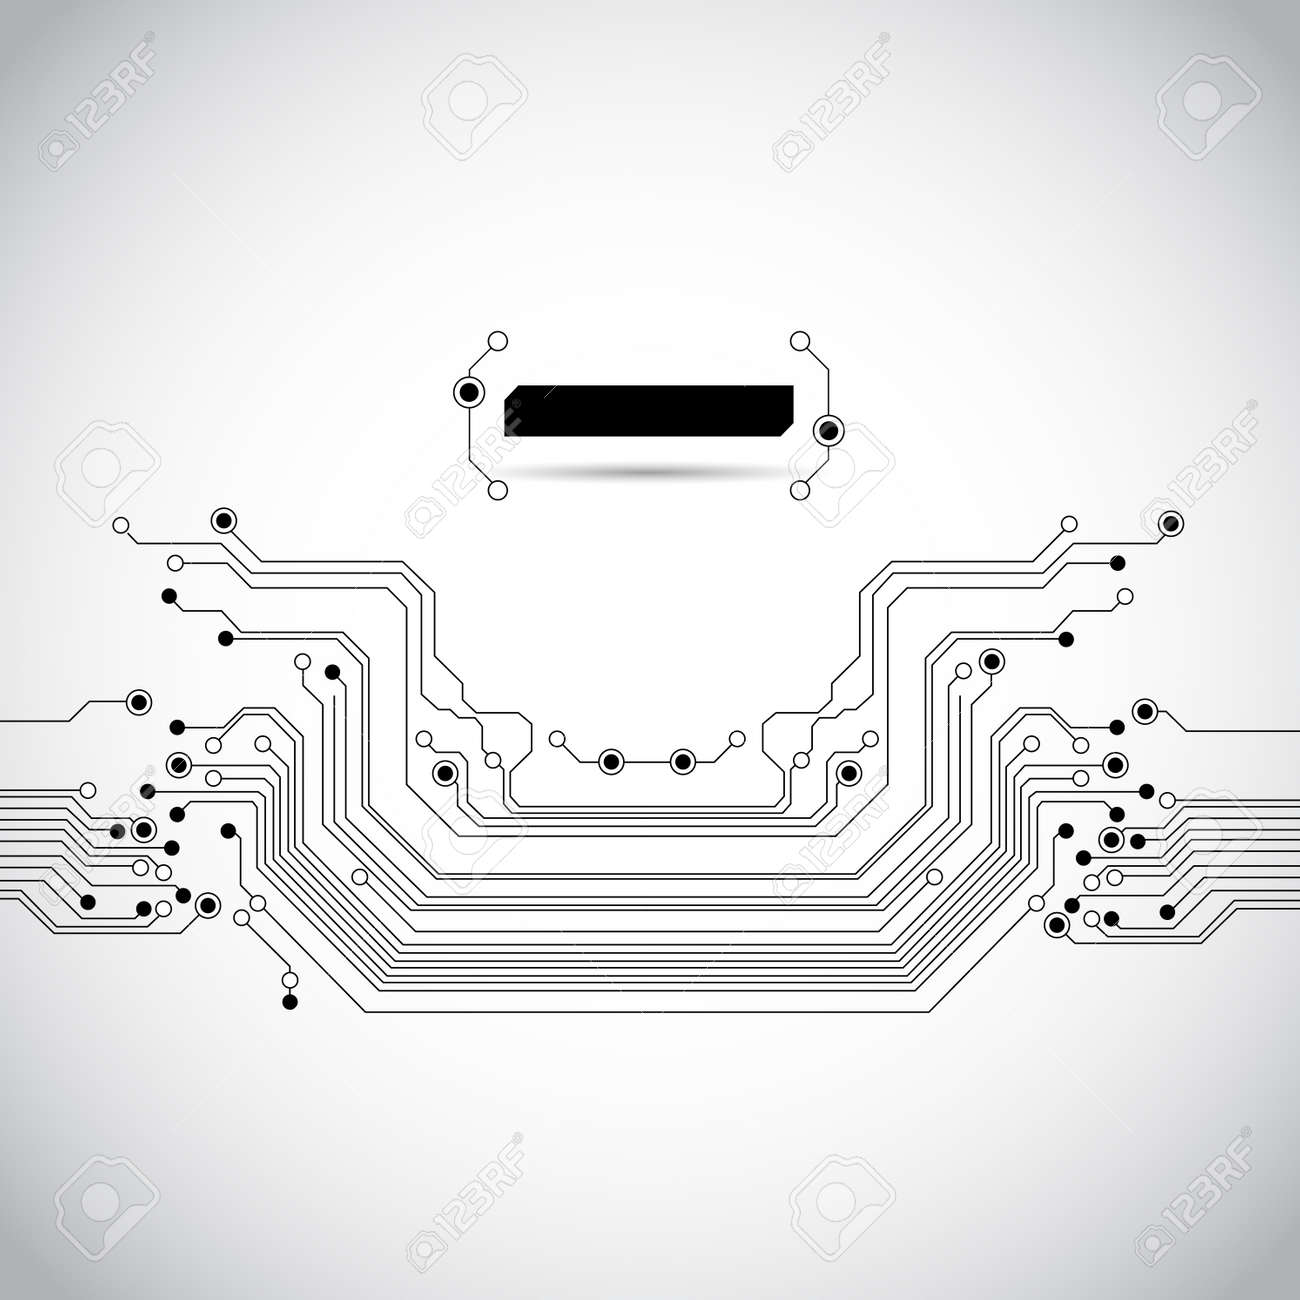 abstract circuit board background texture royalty free cliparts rh 123rf com